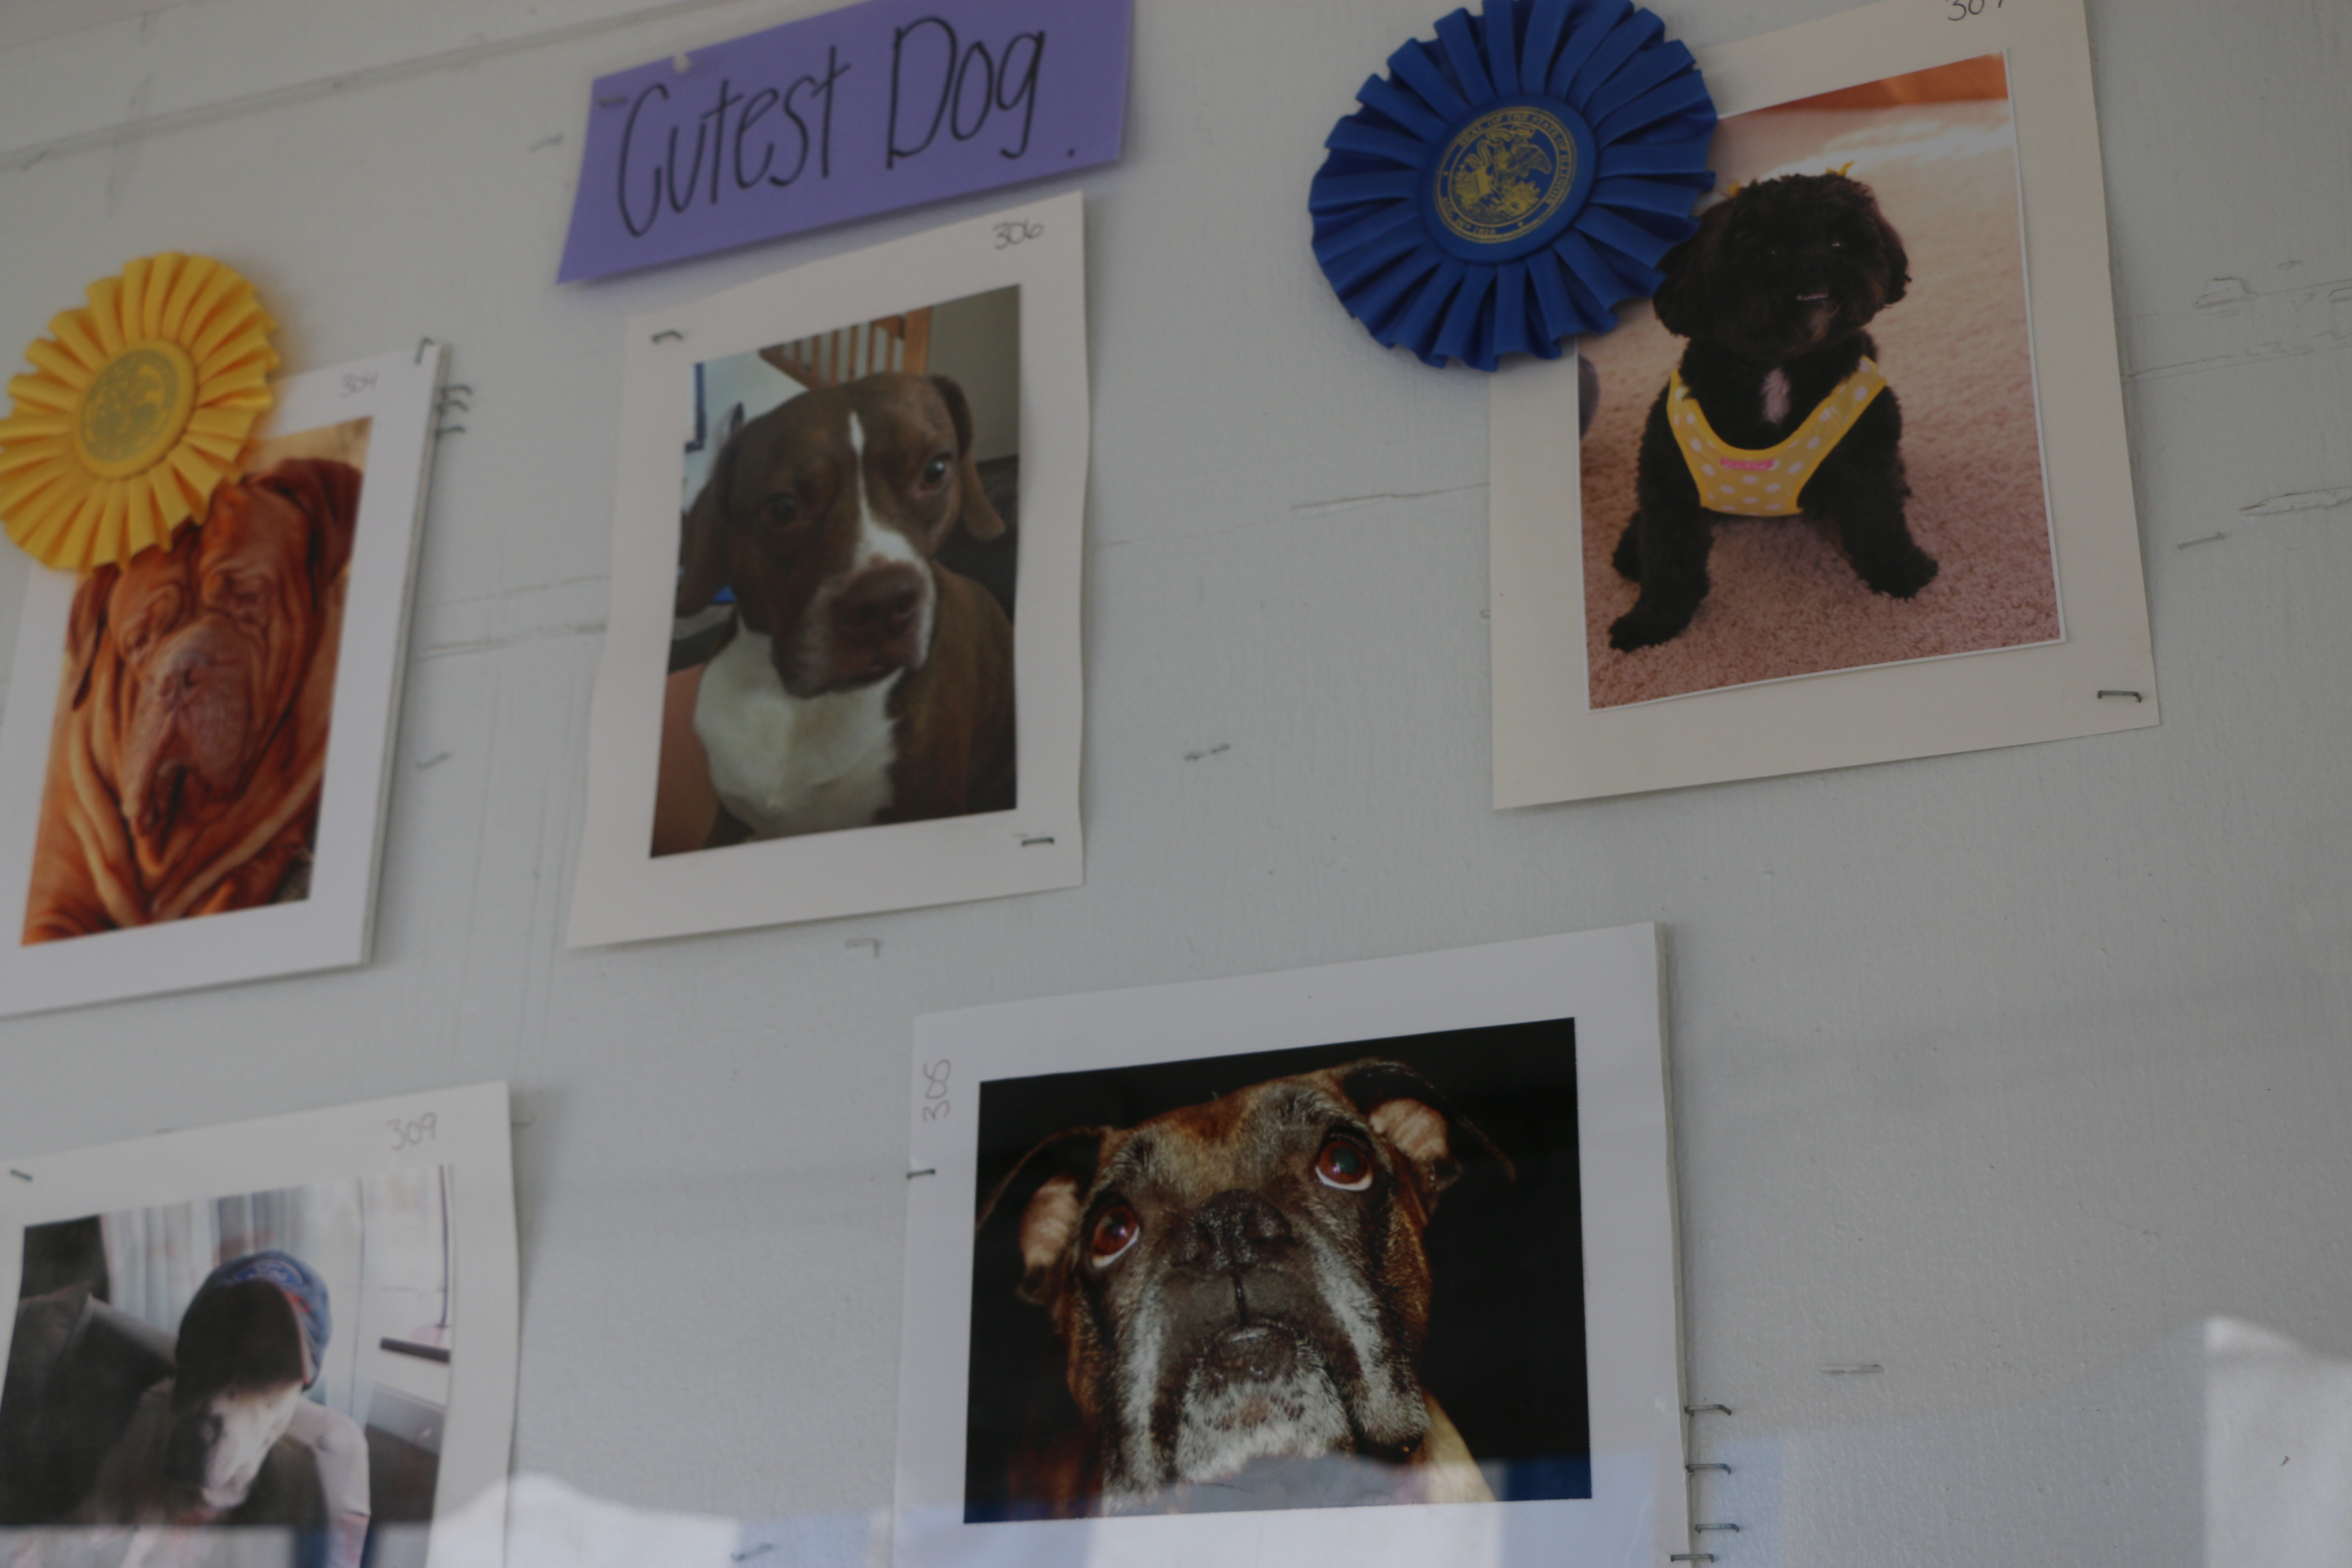 OK ... that's it folks!!!! BUT wait here's two last pics from the 2014 Illinois State Fair. This is a pic of some of the dog contest entries and winners. - ANITA STIENSTRA